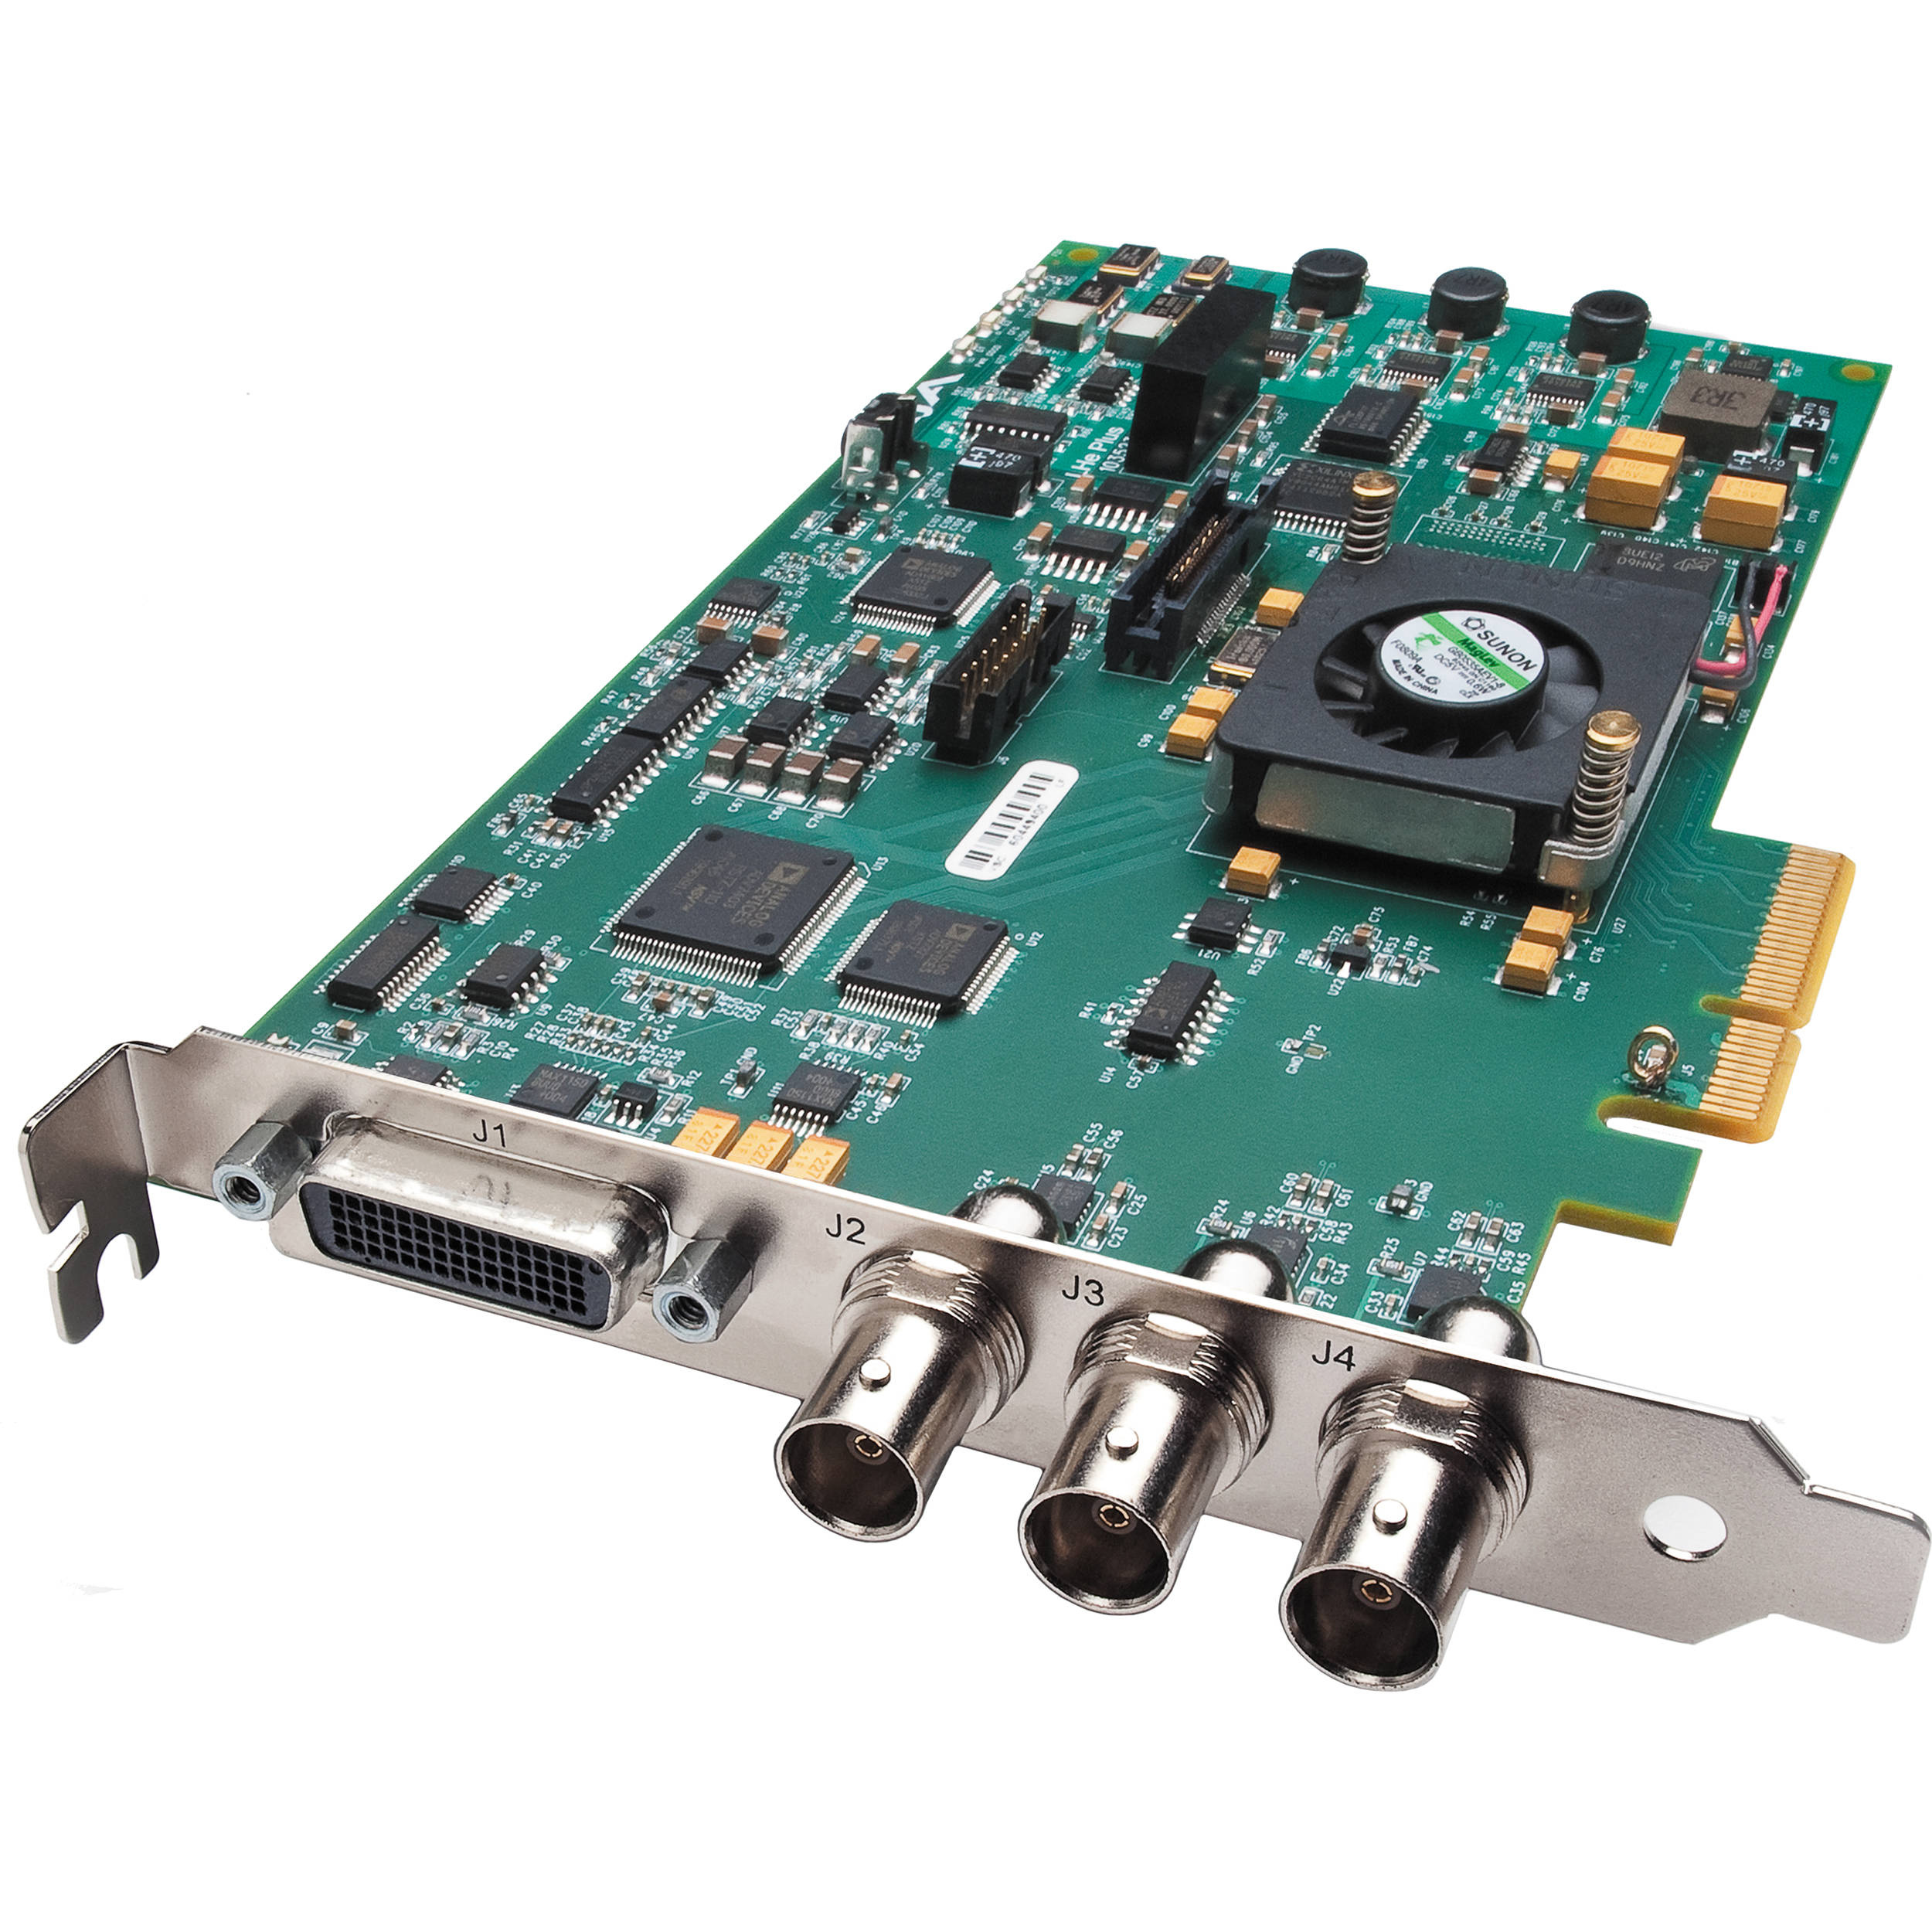 AJA KONA LHe Plus HD-SDI / Analog Video Capture & Playback PCIe Card